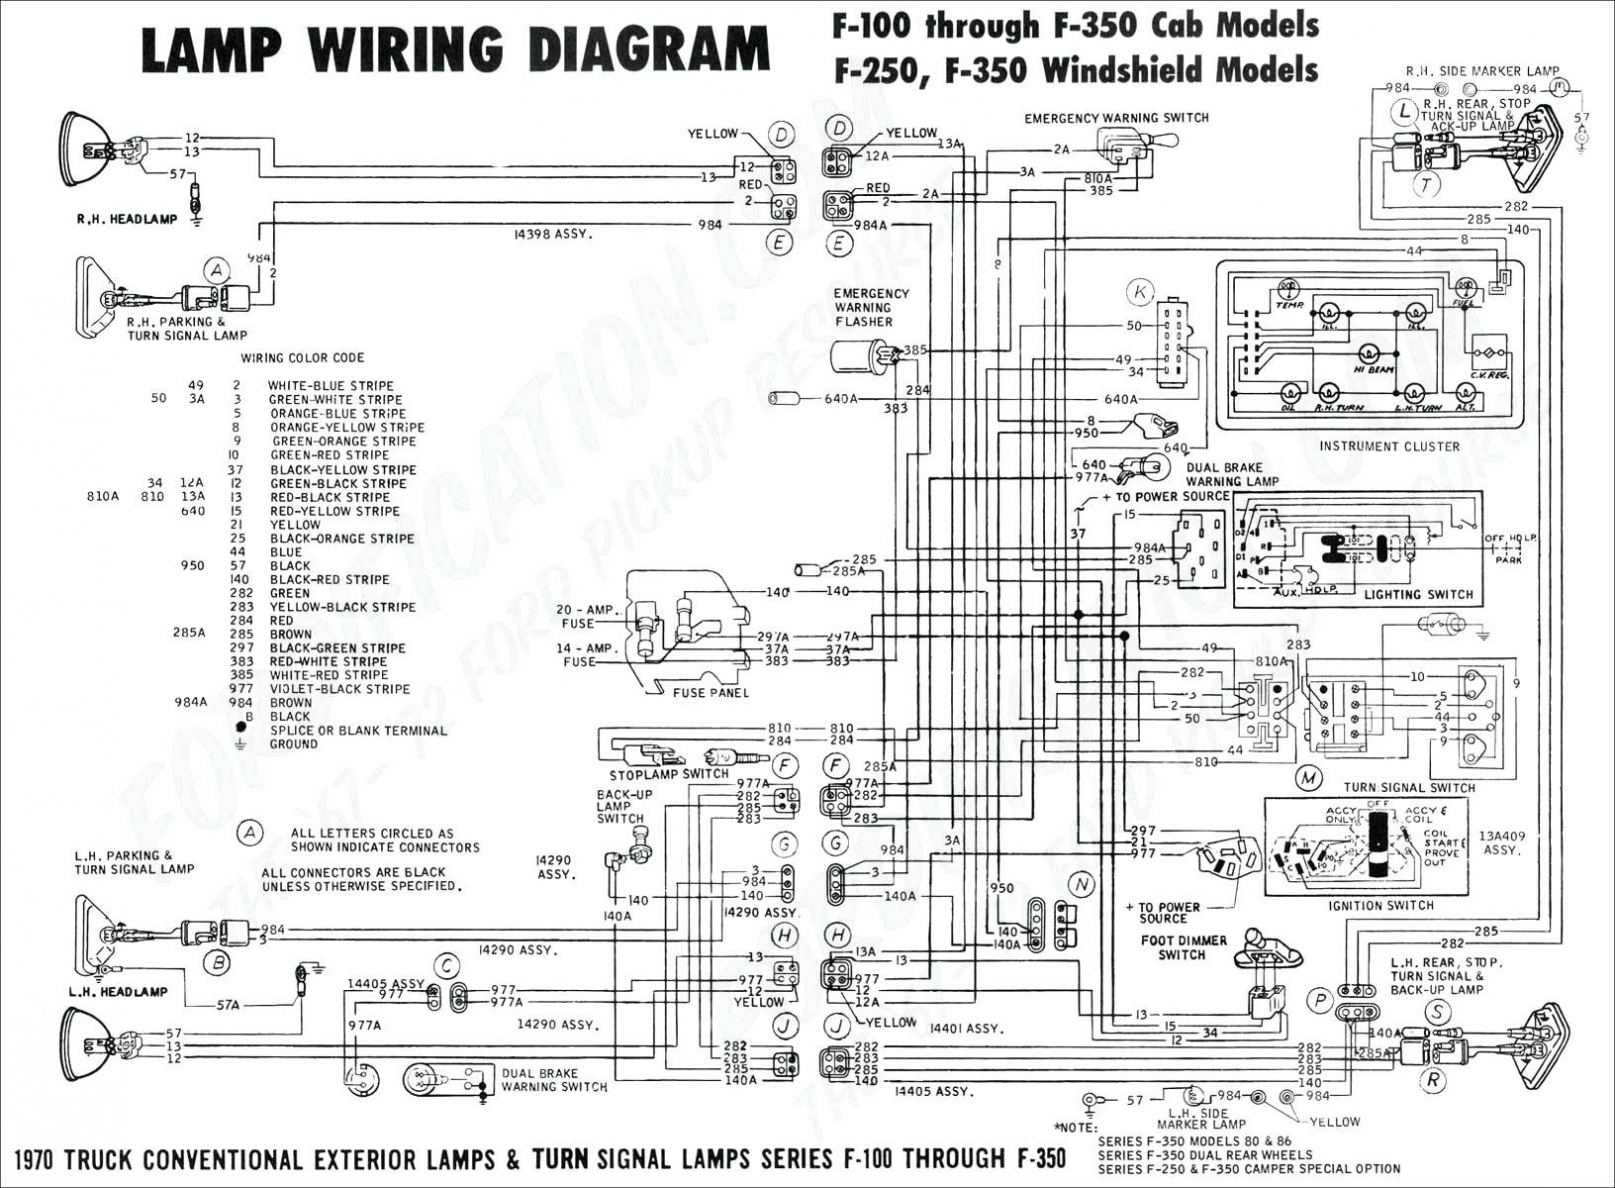 2004 Ford F350 Wiring Diagram - Electrical Schematic Wiring Diagram • - 2004 Ford F250 Trailer Wiring Diagram